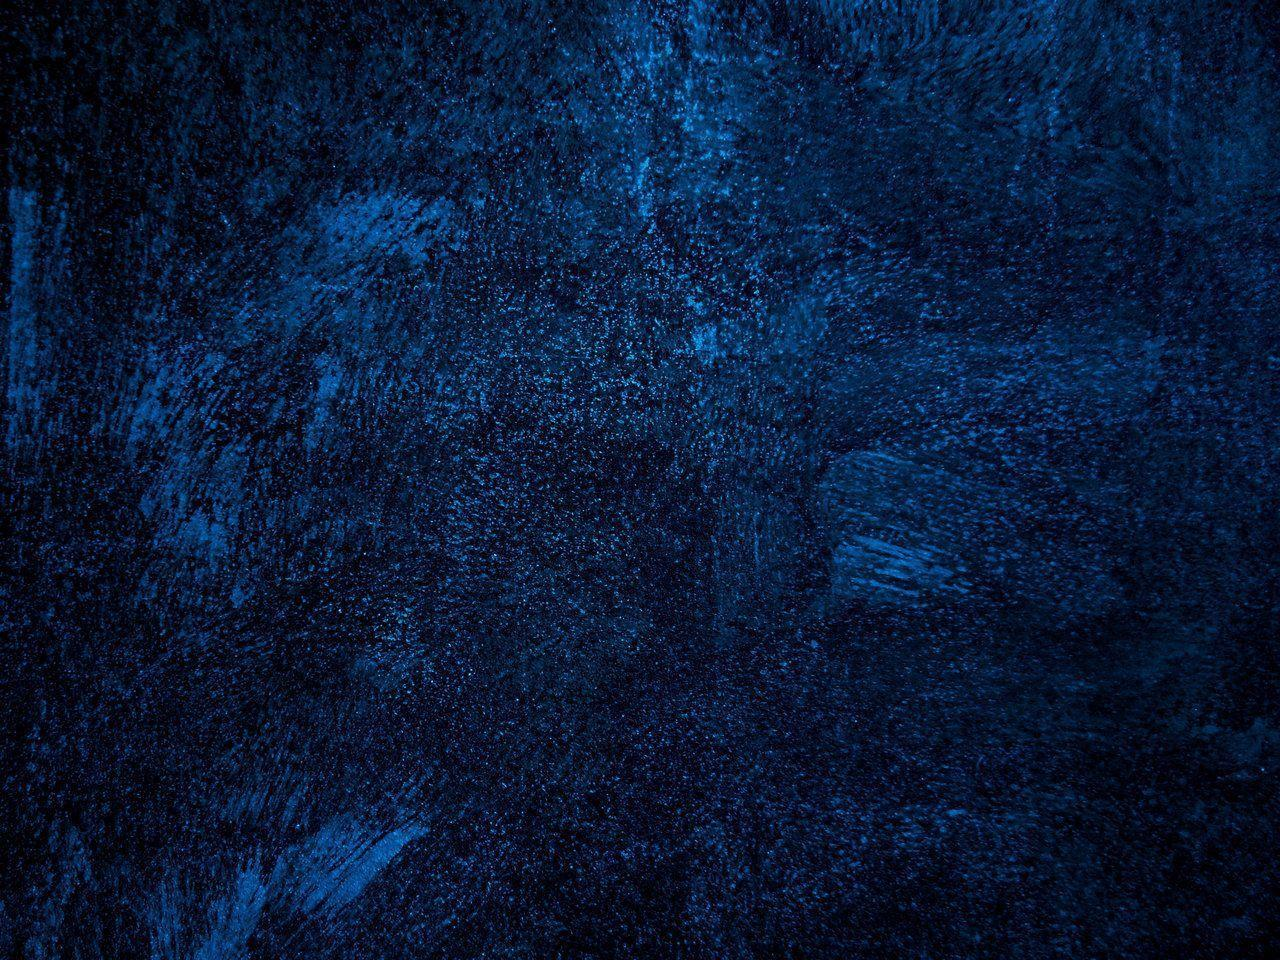 dark blue backgrounds image wallpaper cave